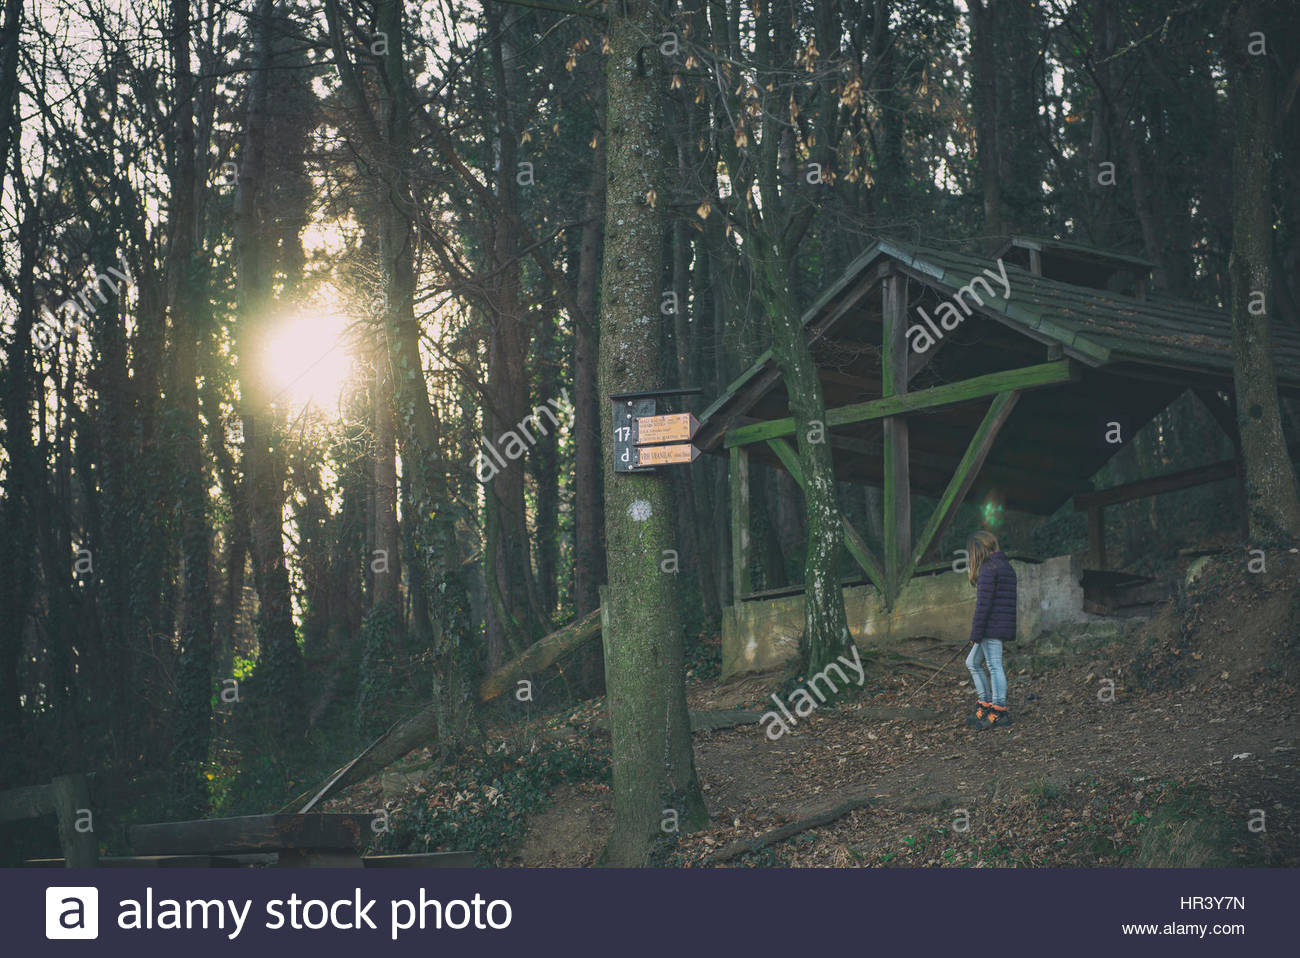 Girl standing alone in the dark forest - Stock Image